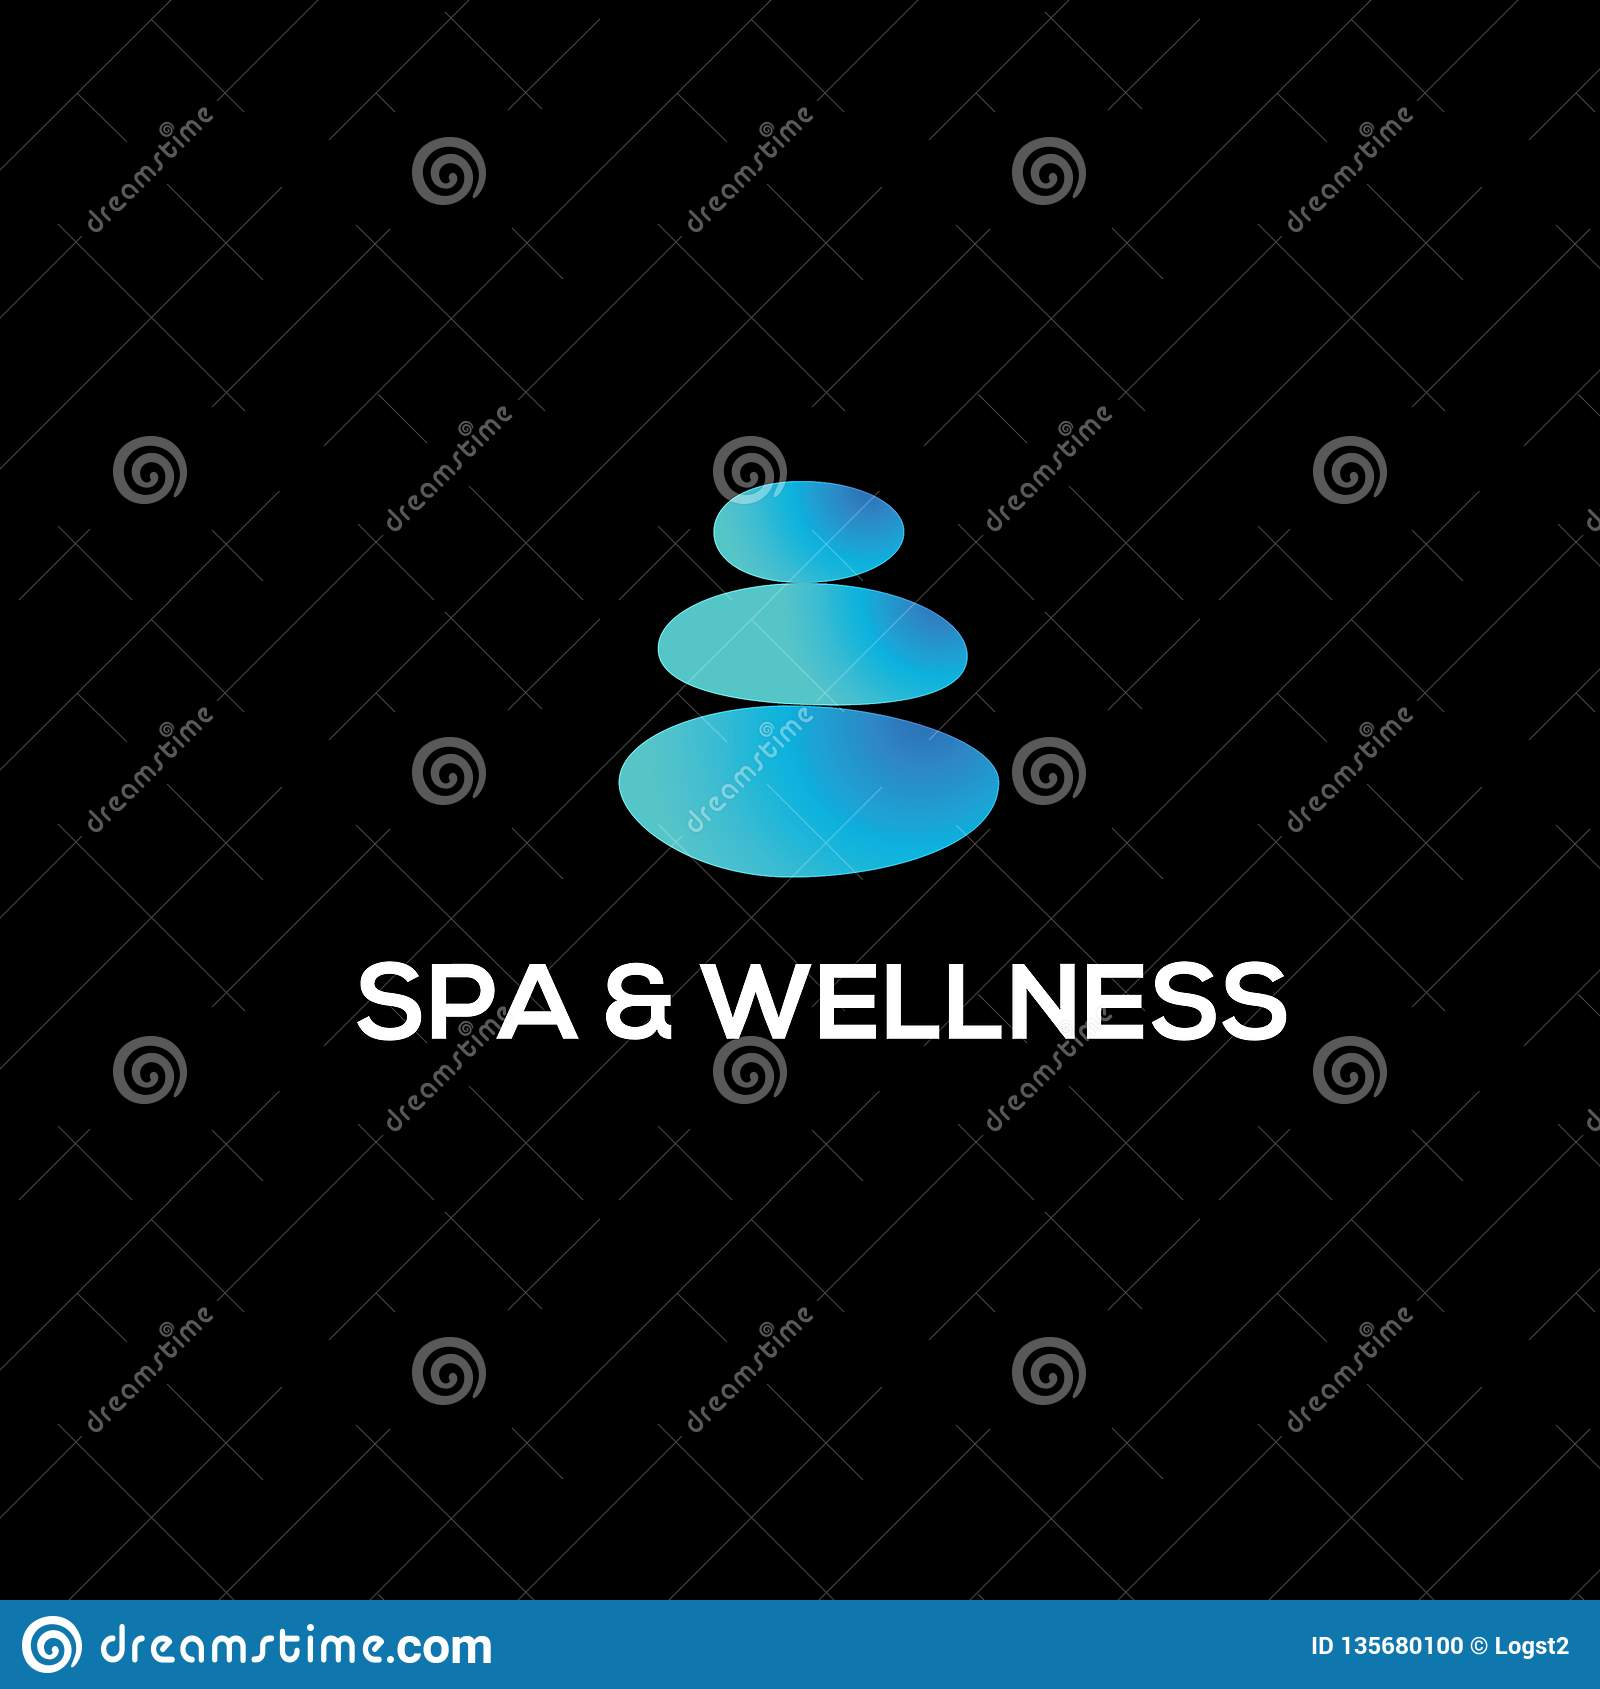 Spa And Wellness Vector Logo. Thai Mage Emblem. Zen Logo ... Zen Garden Design Logos on pave logo, quest garden logo, healing garden logo, rock garden logo, olive garden logo, mystique logo, home logo, green garden logo, moonwalk logo, urban garden logo, china garden logo, star garden logo, lotus garden logo, japanese garden logo, sun garden logo, stone garden logo, christian garden logo, botanical garden logo, secret garden logo, classic garden logo,